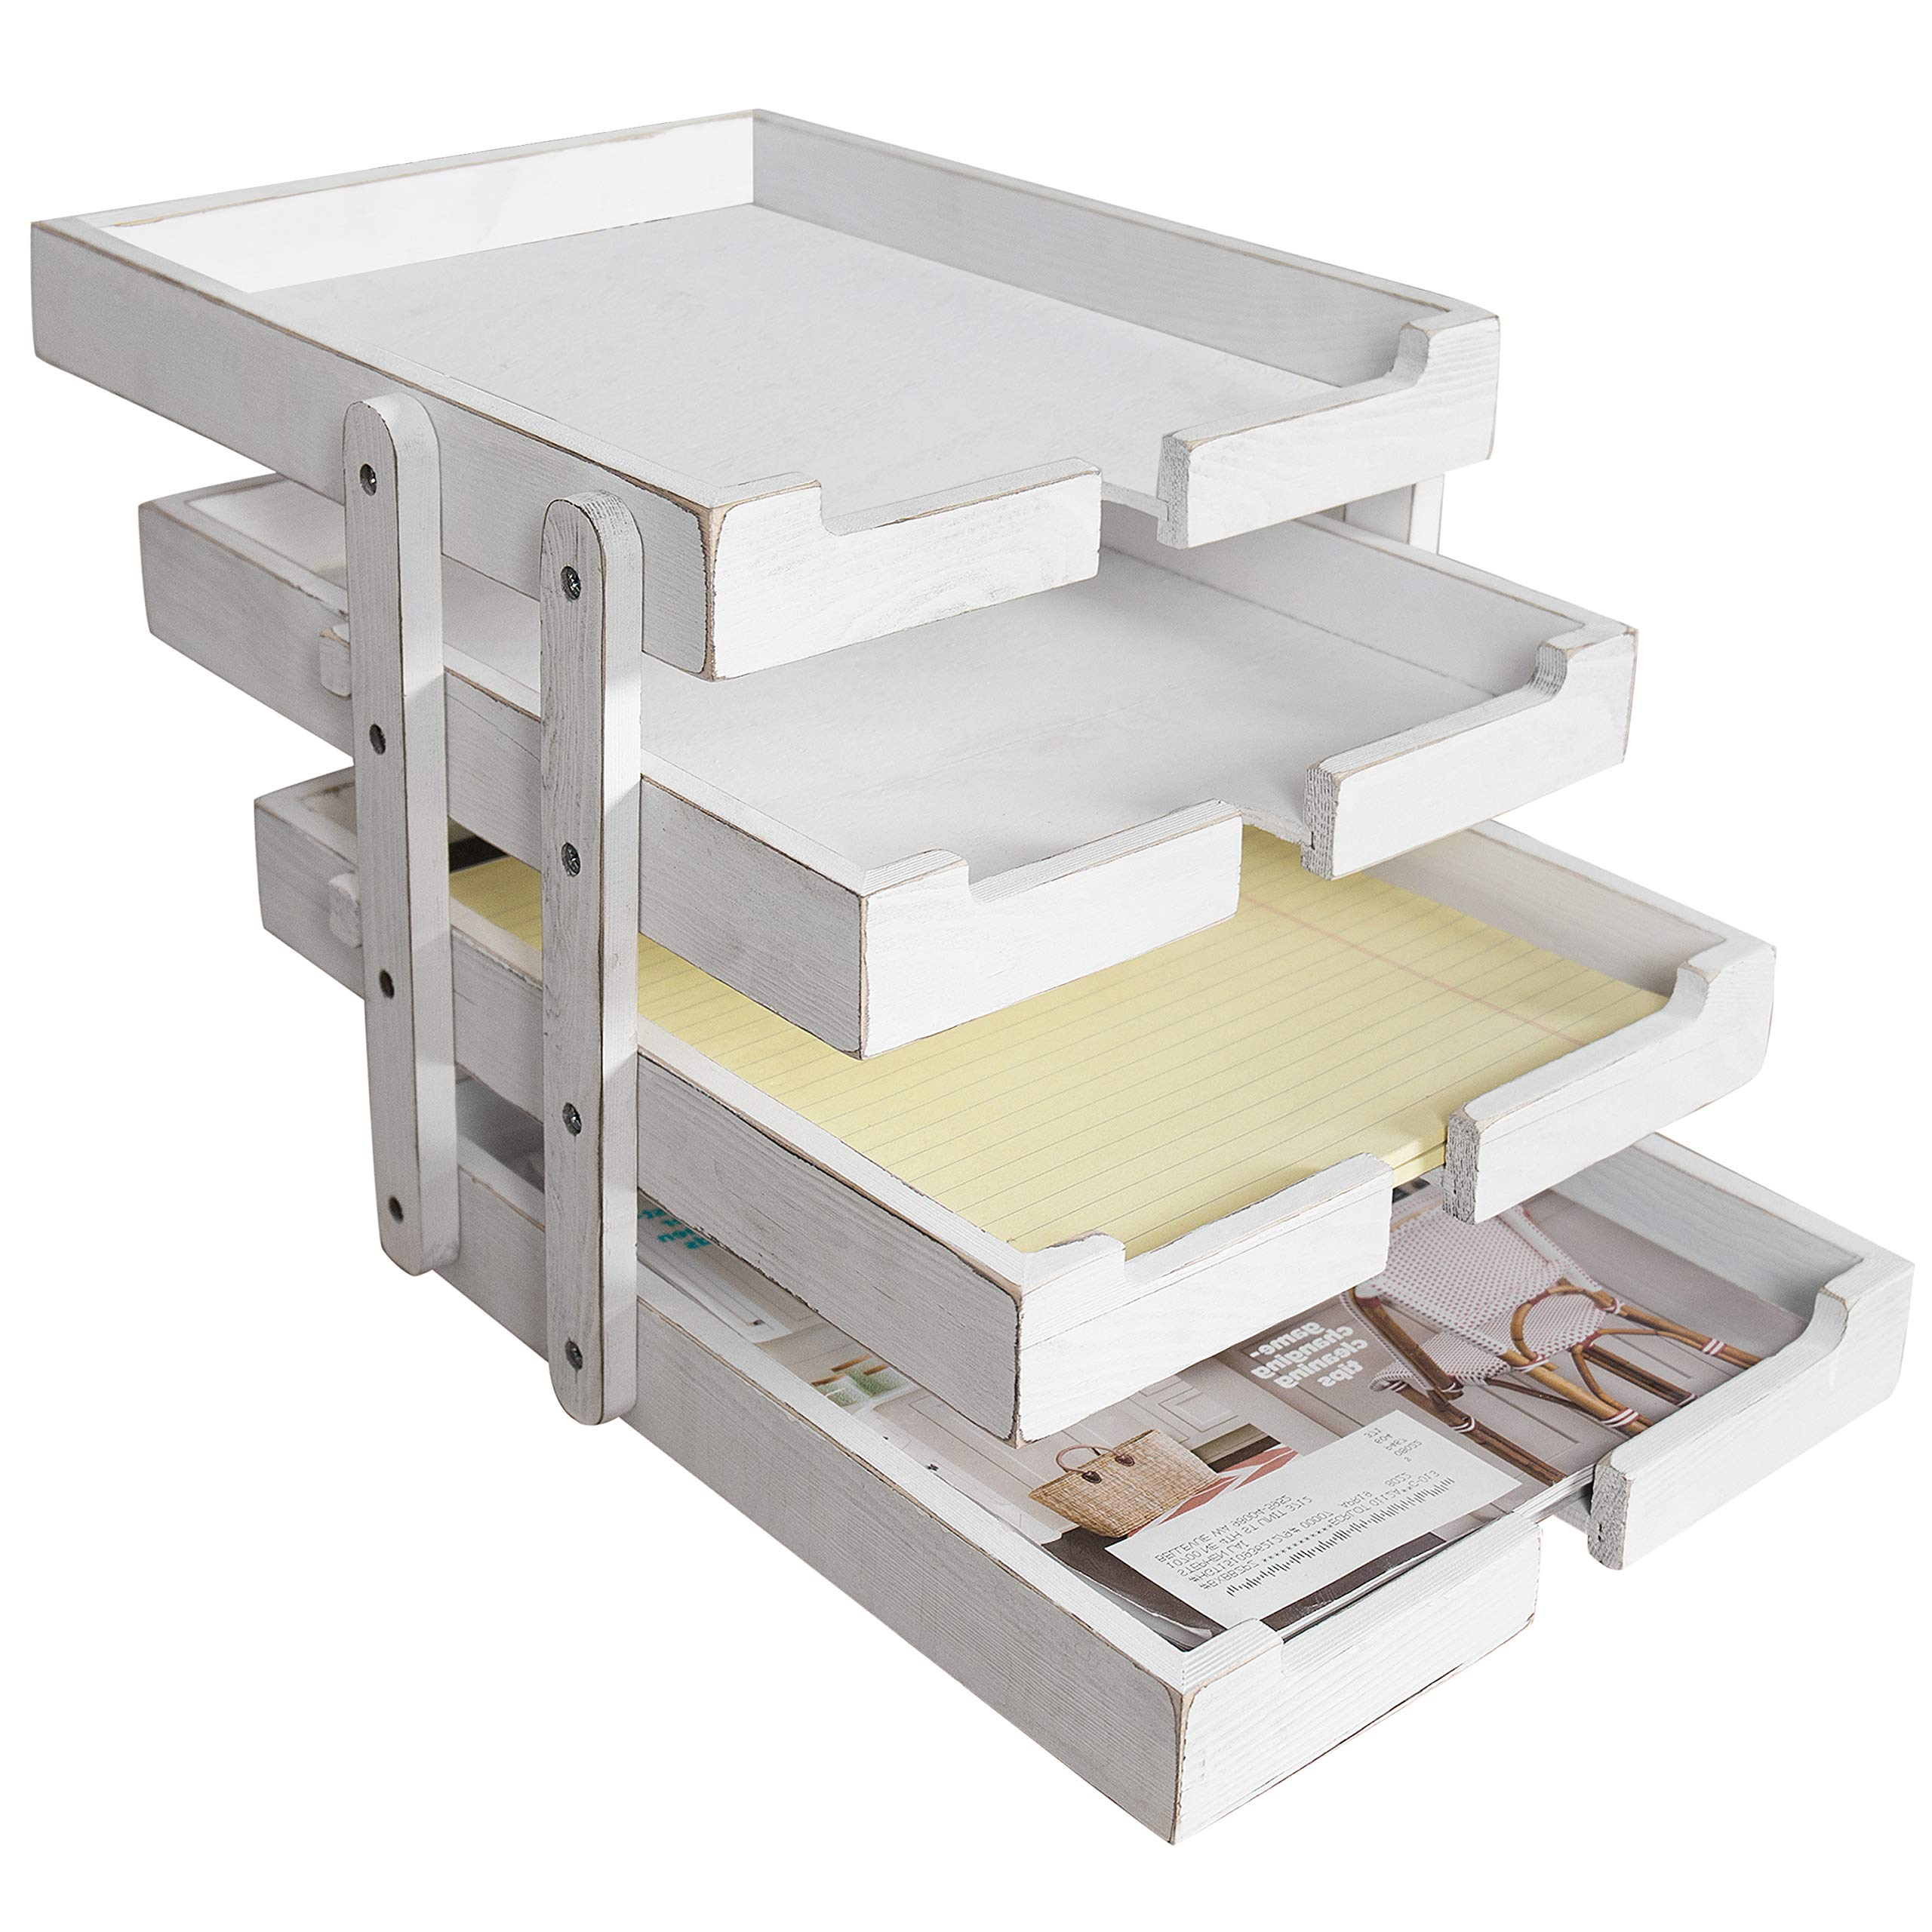 MyGift 4-Tier Collapsible & Expandable Vintage White Wood Document Tray by MyGift